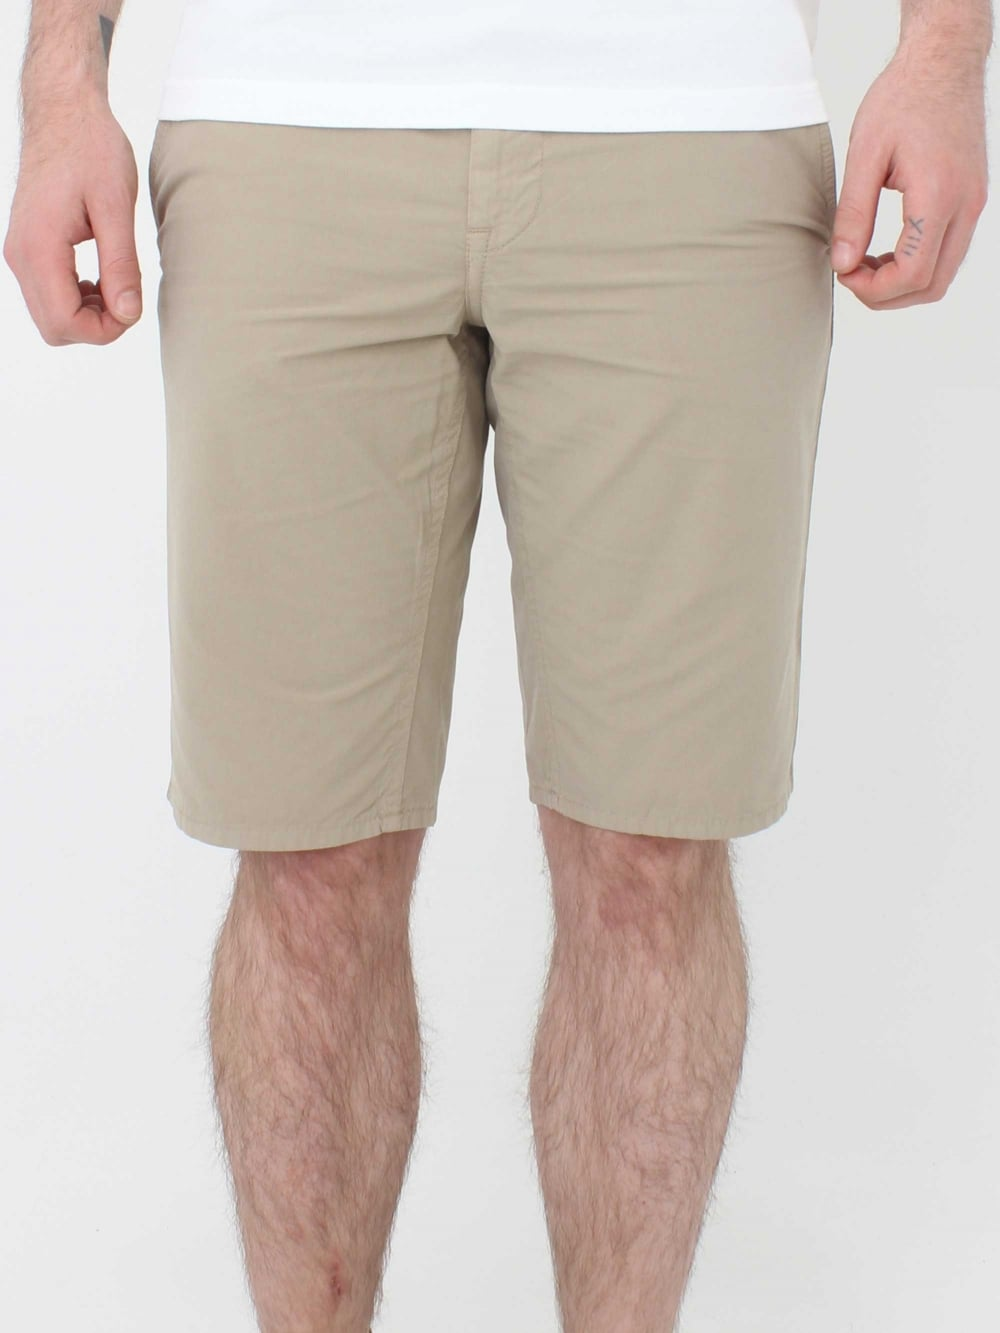 5b95c80f Hugo Boss Schino Slim Fit Shorts in Medium Beige